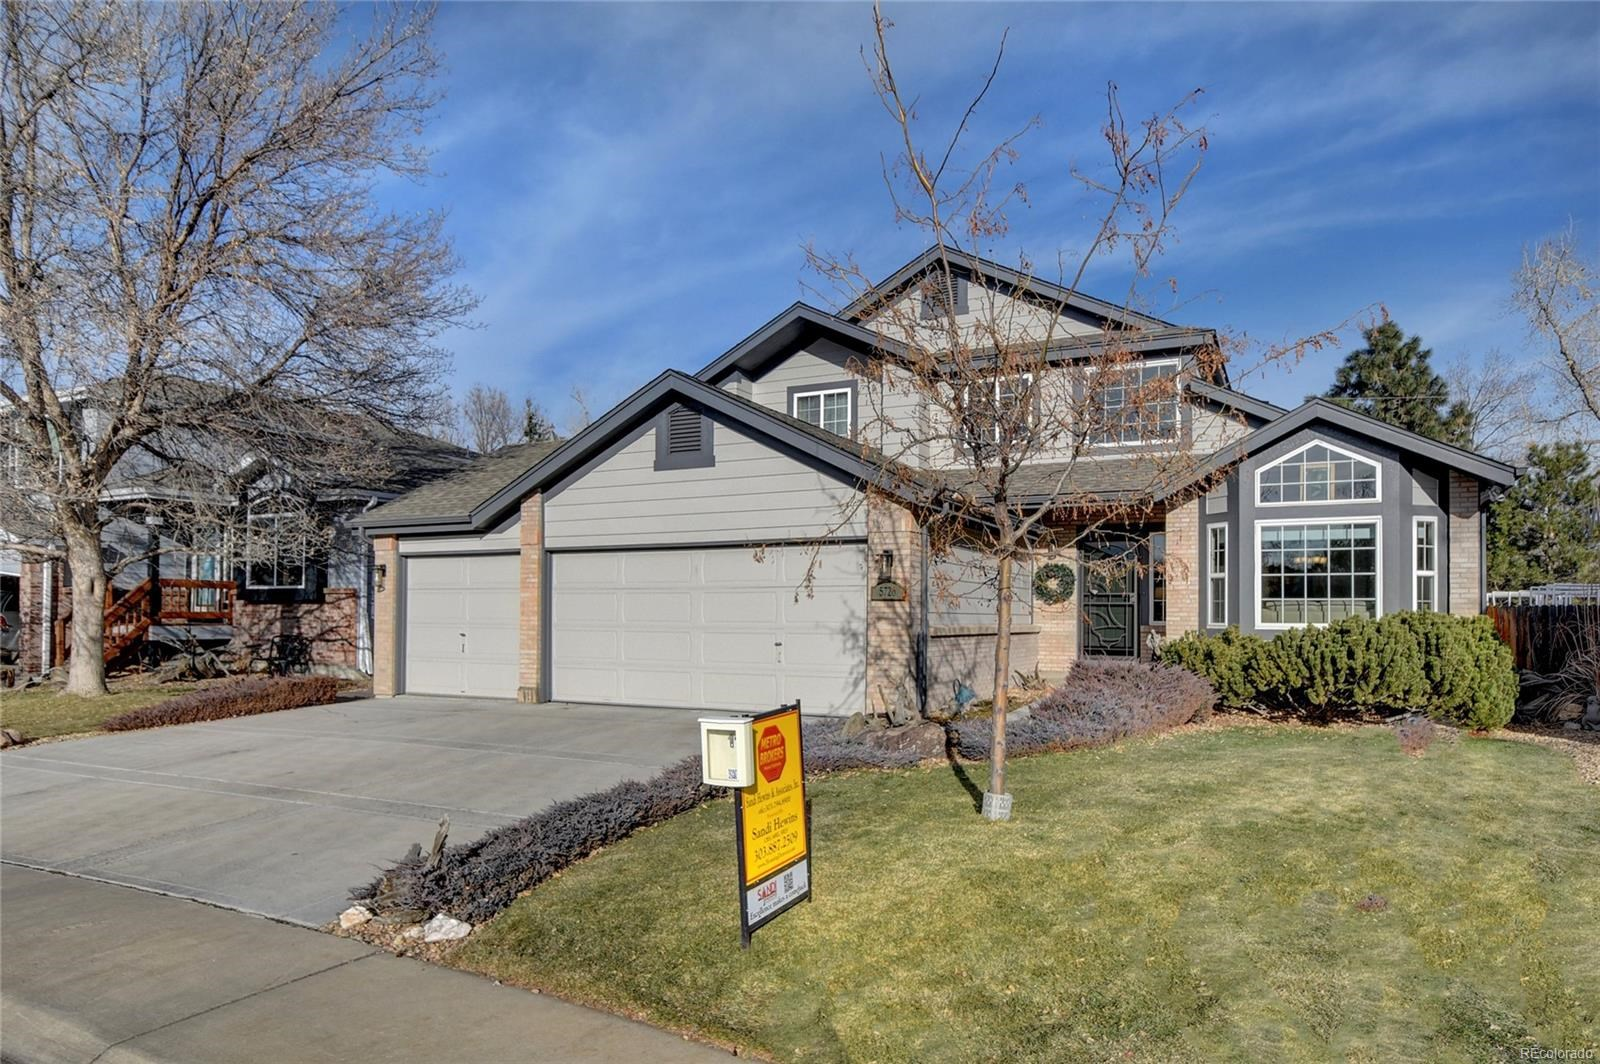 MLS# 9913436 - 1 - 5726 W 81st Place, Arvada, CO 80003